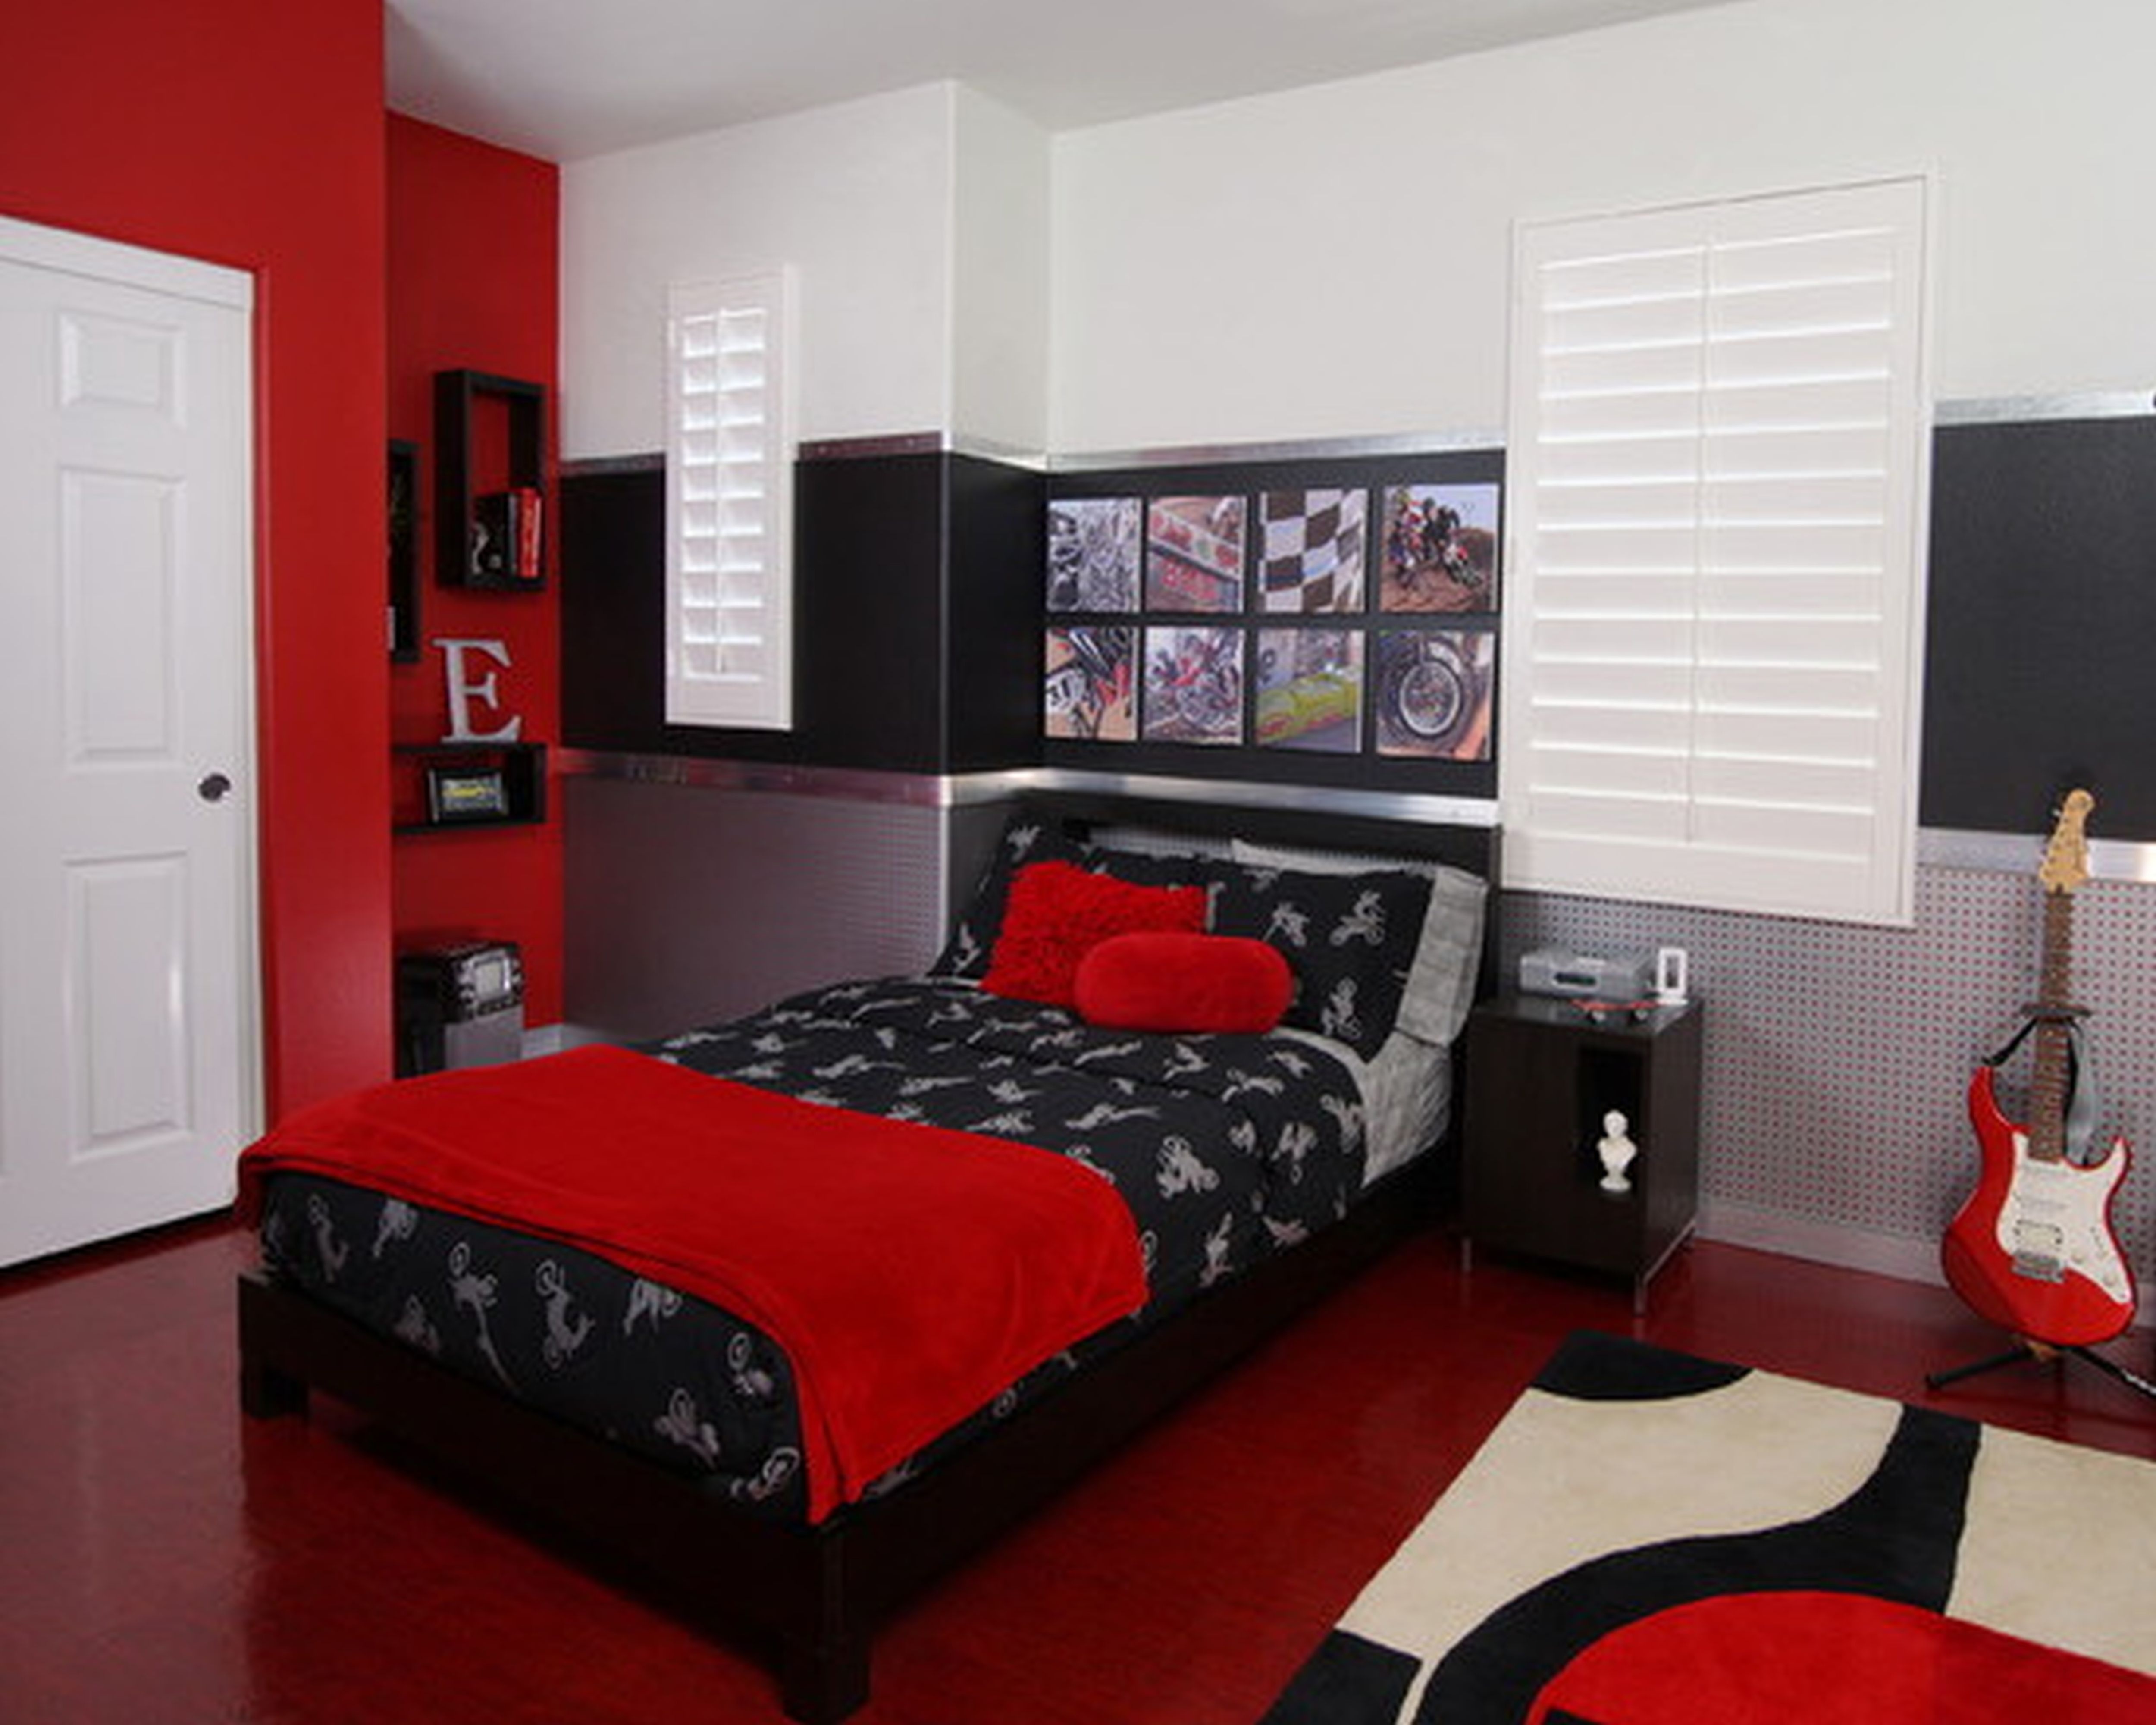 48 Samples For Black White And Red Bedroom Decorating Ideas 12 Cool Bedroom Ideas Hot Bedroom Color Ideas For Cou Red Bedroom Design Boy Room Paint Bedroom Red